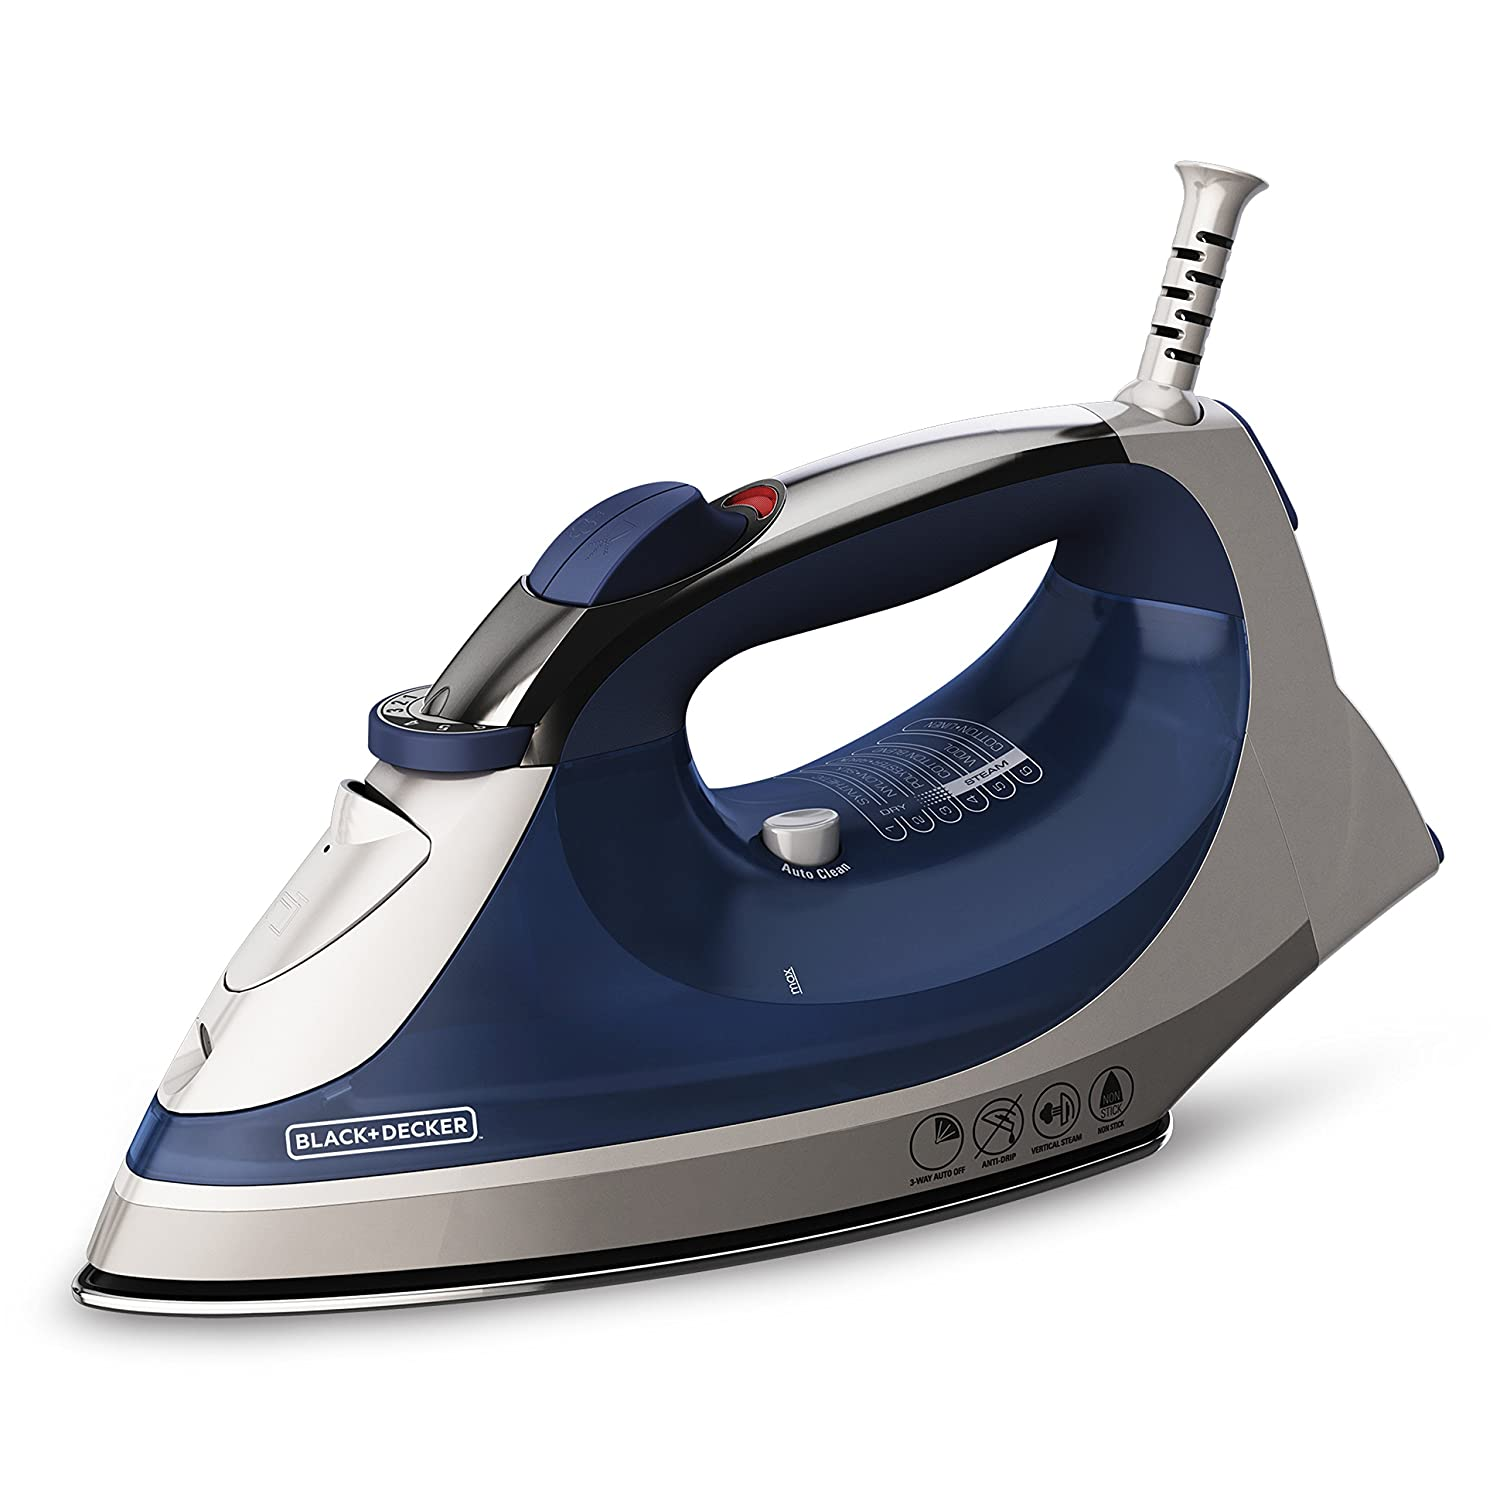 BLACK+DECKER Corded Xpress Steam Iron, Blue, IR08X Spectrum Brands